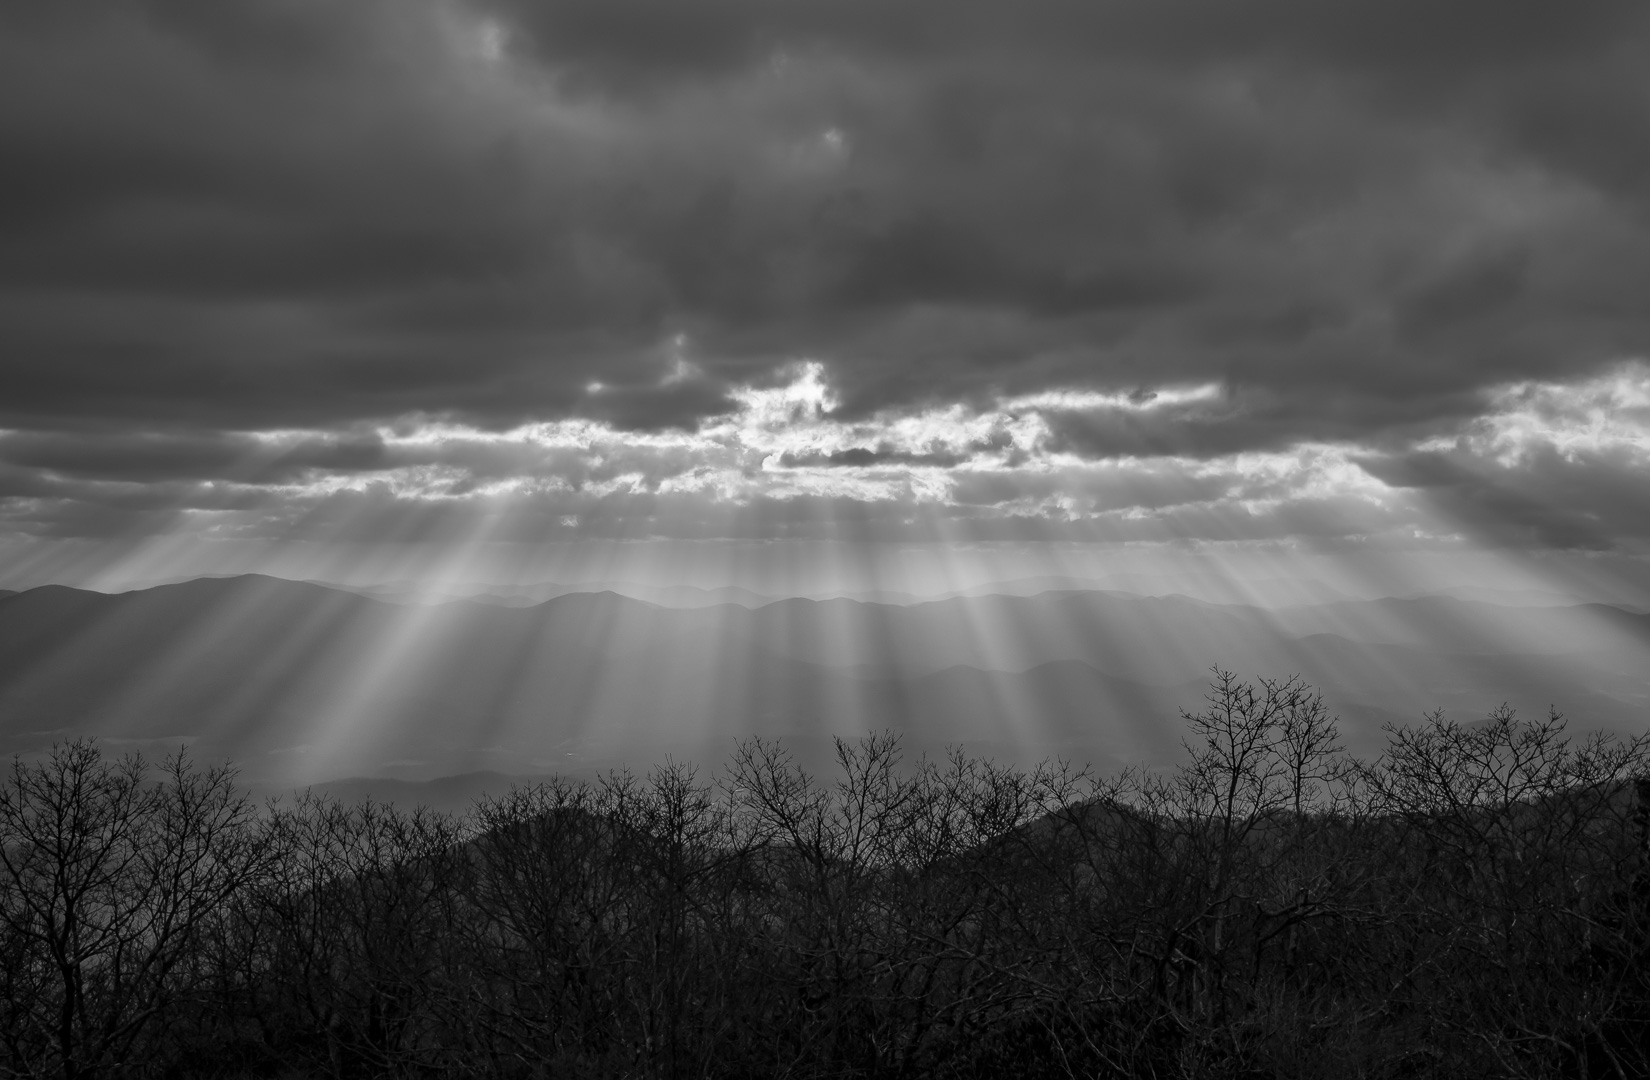 Brasstown Bald - God-rays at the highest point in the State of Georgia at 4,784 feet.